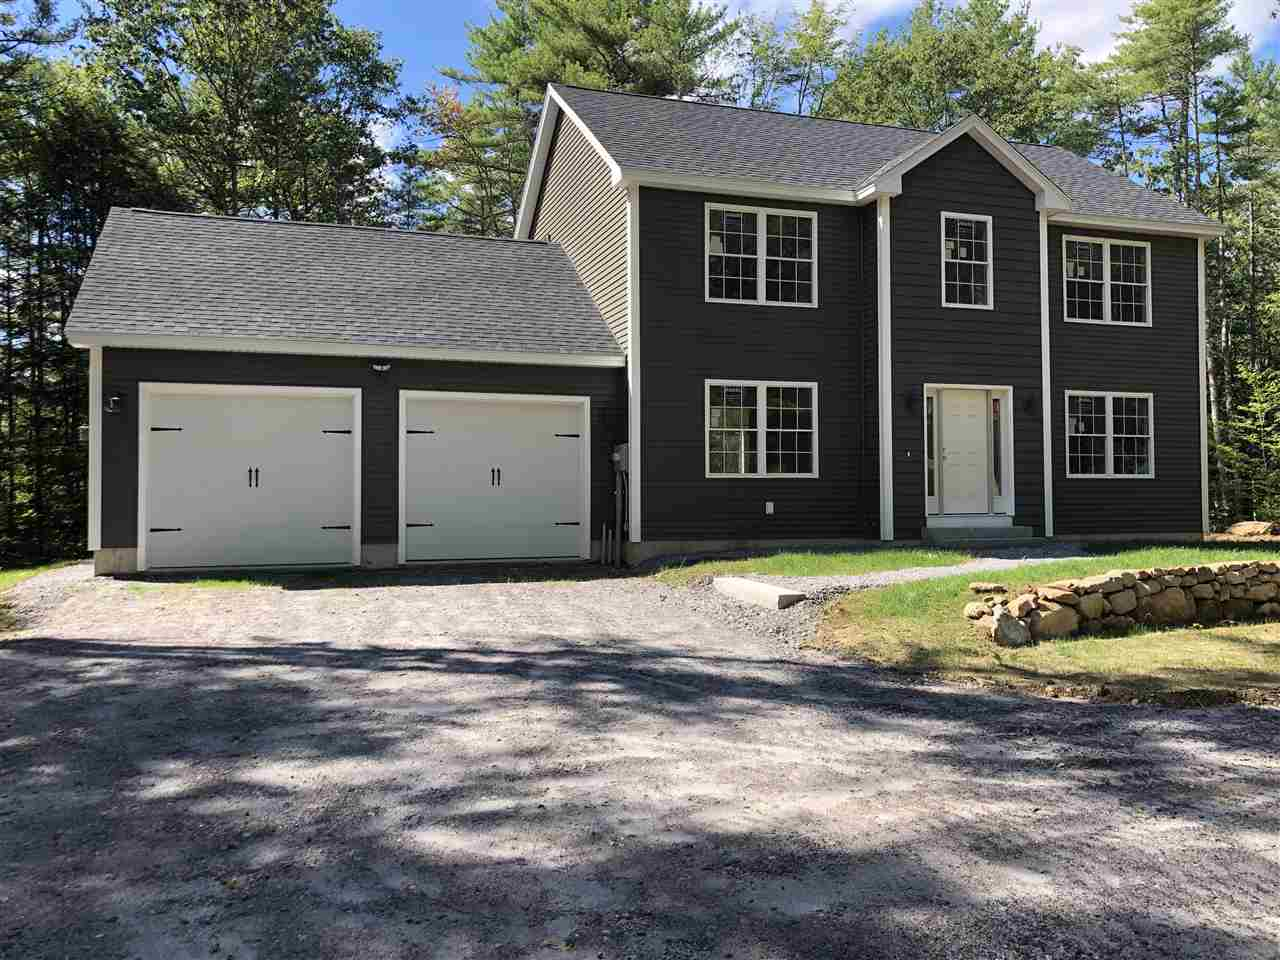 1066 Upper Straw Road Hopkinton, NH 03229